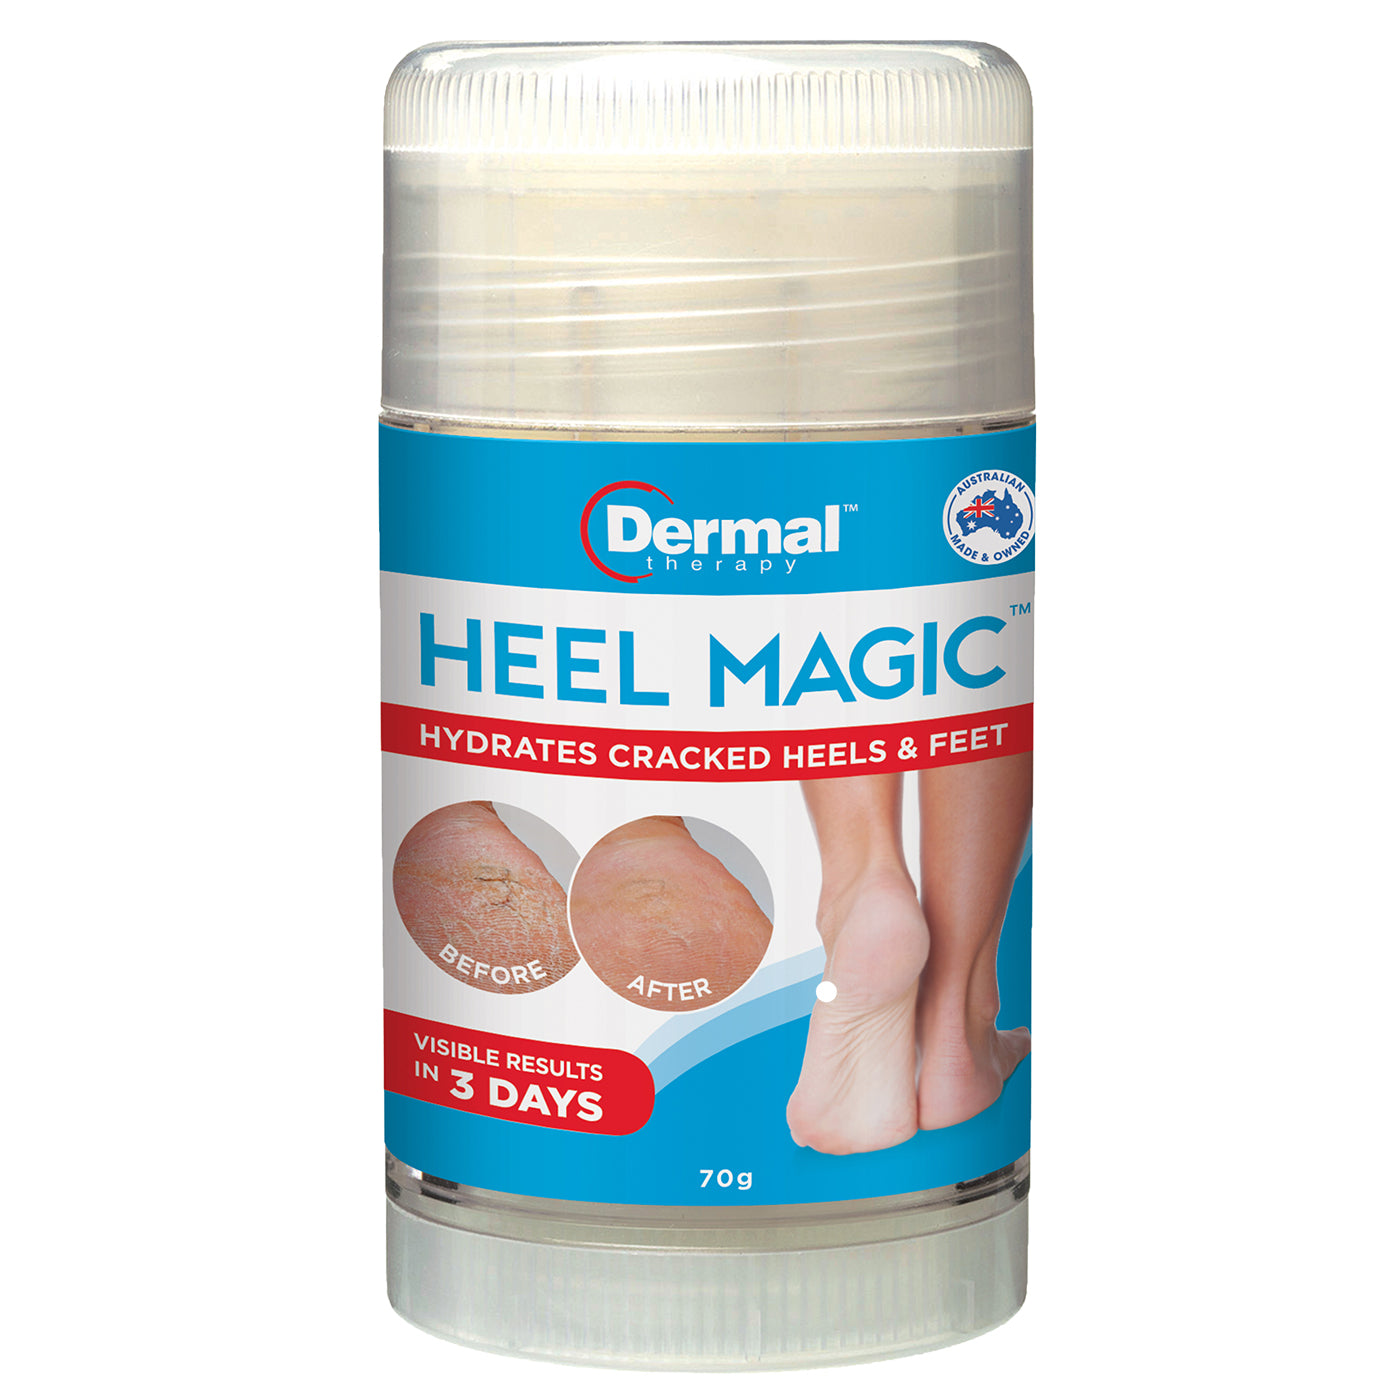 Dermal Therapy Roll On Heel Magic 70g|Before & After Shot Of Skin Following Dermal Therapy Heel Magic Treatment